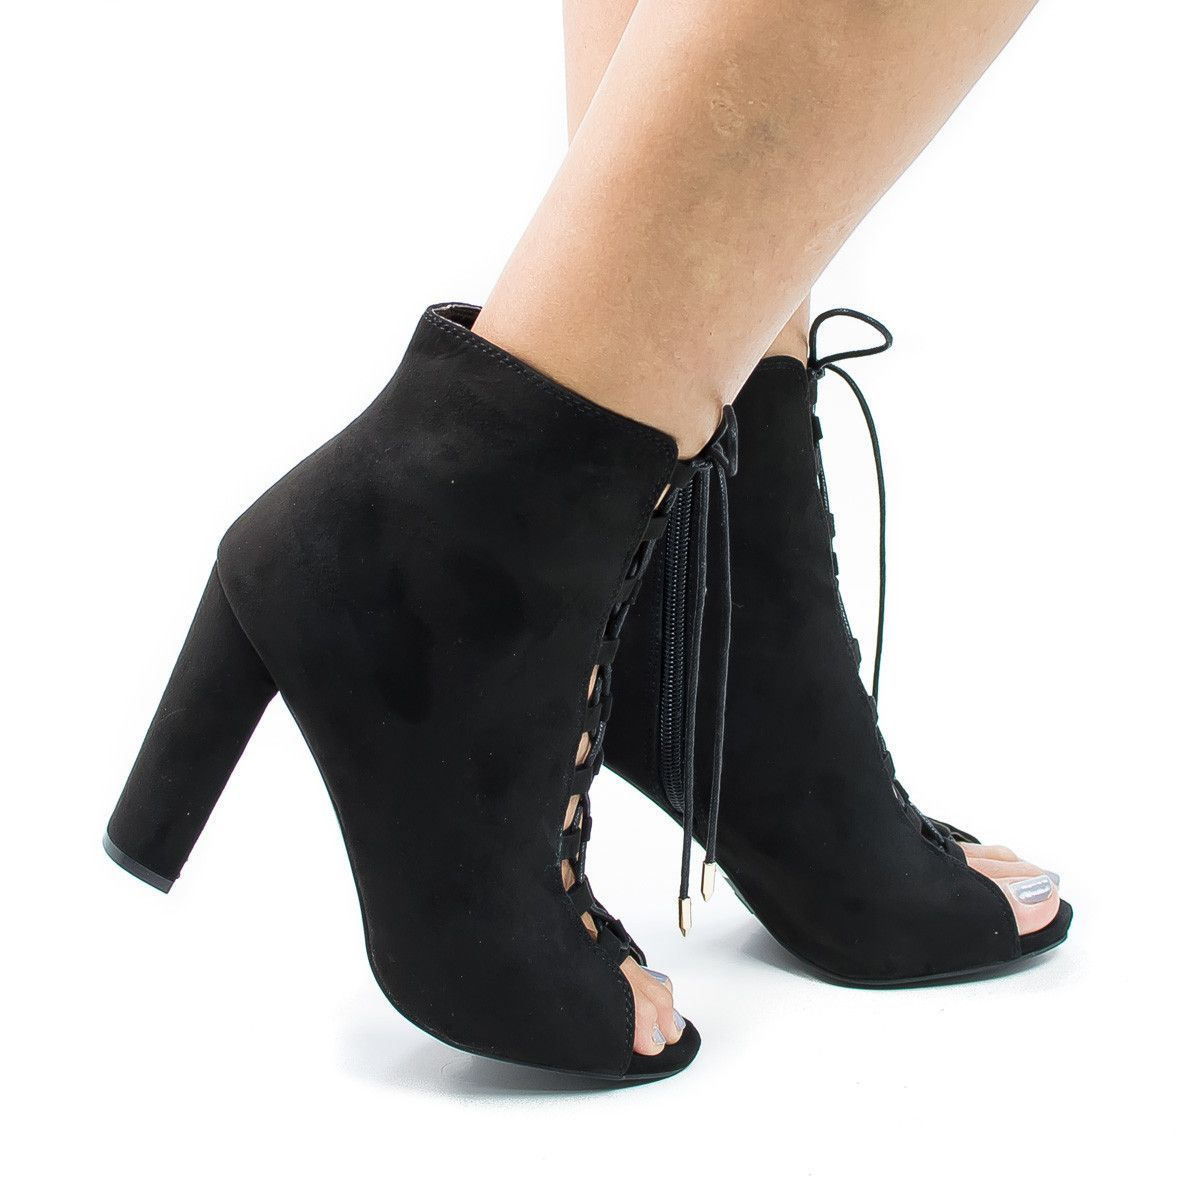 Morris12 Black Suede Retro Corset Lace Up Peep Toe Blocked Heel Ankle Booties